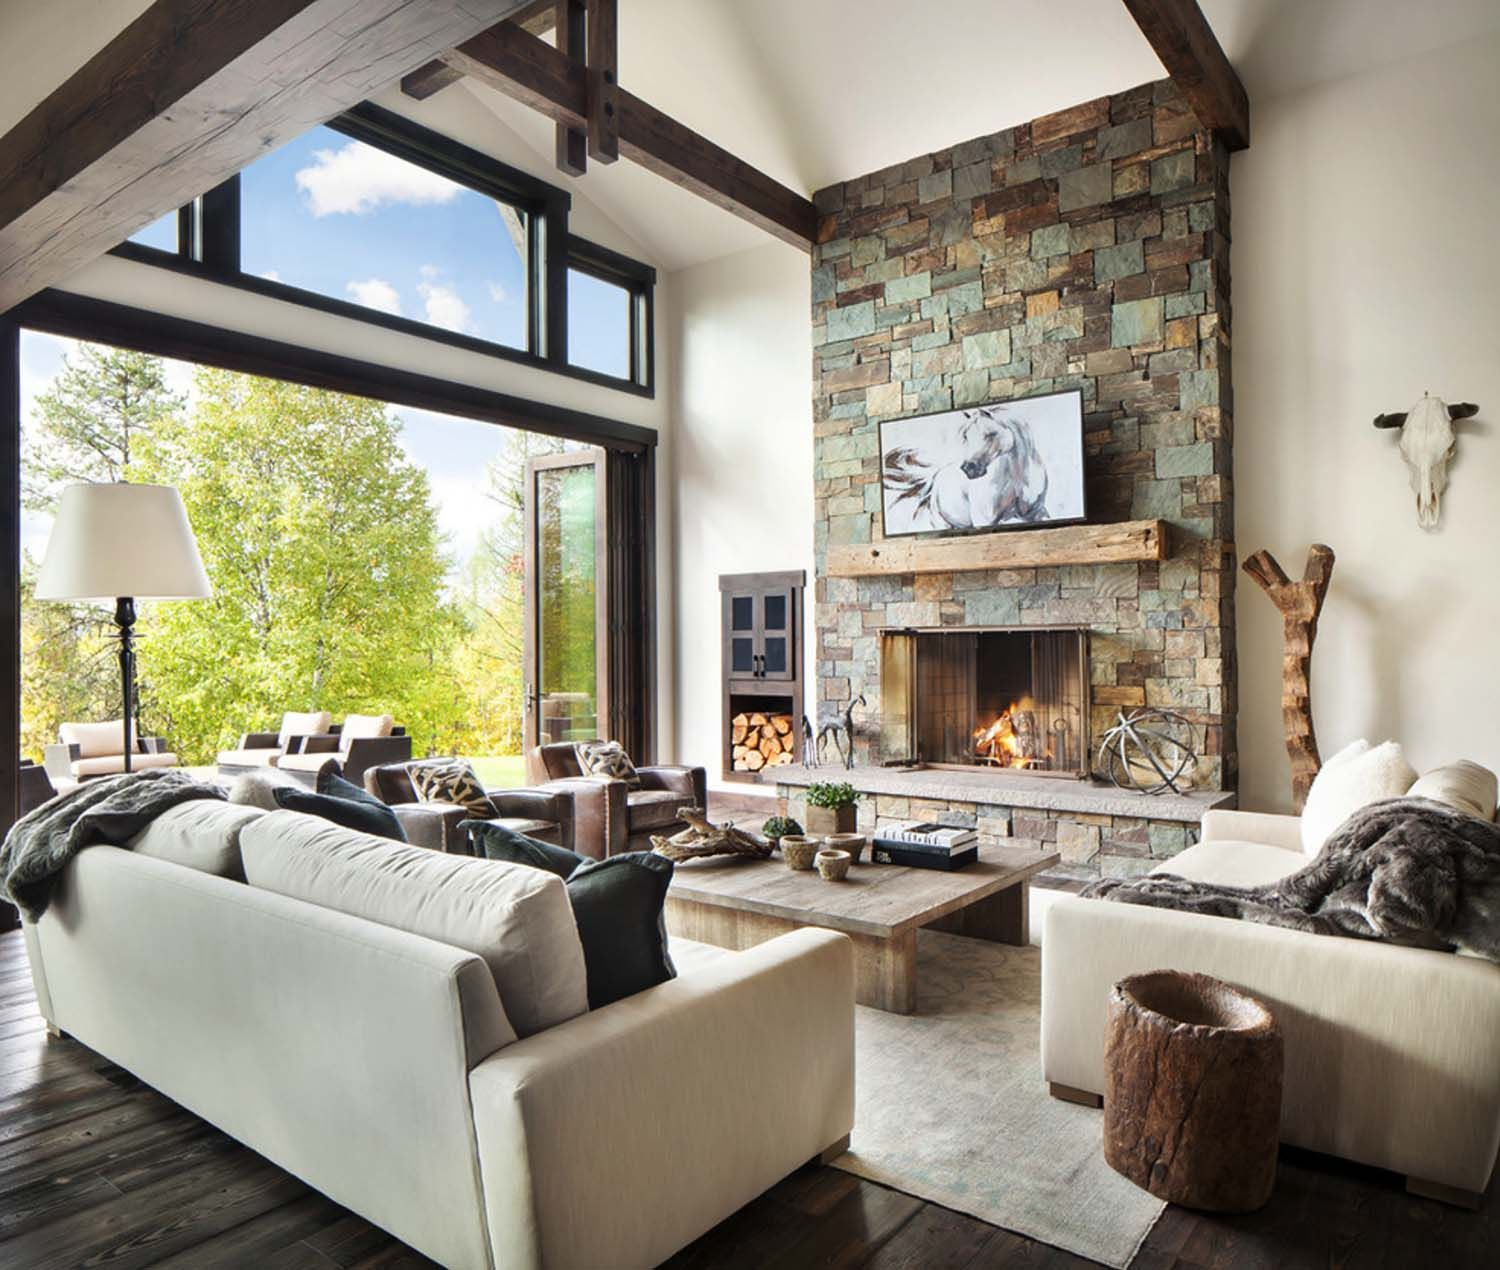 This beautifully designed rustic modern dwelling is the creative imagination of sage interior design located in whitefish montana